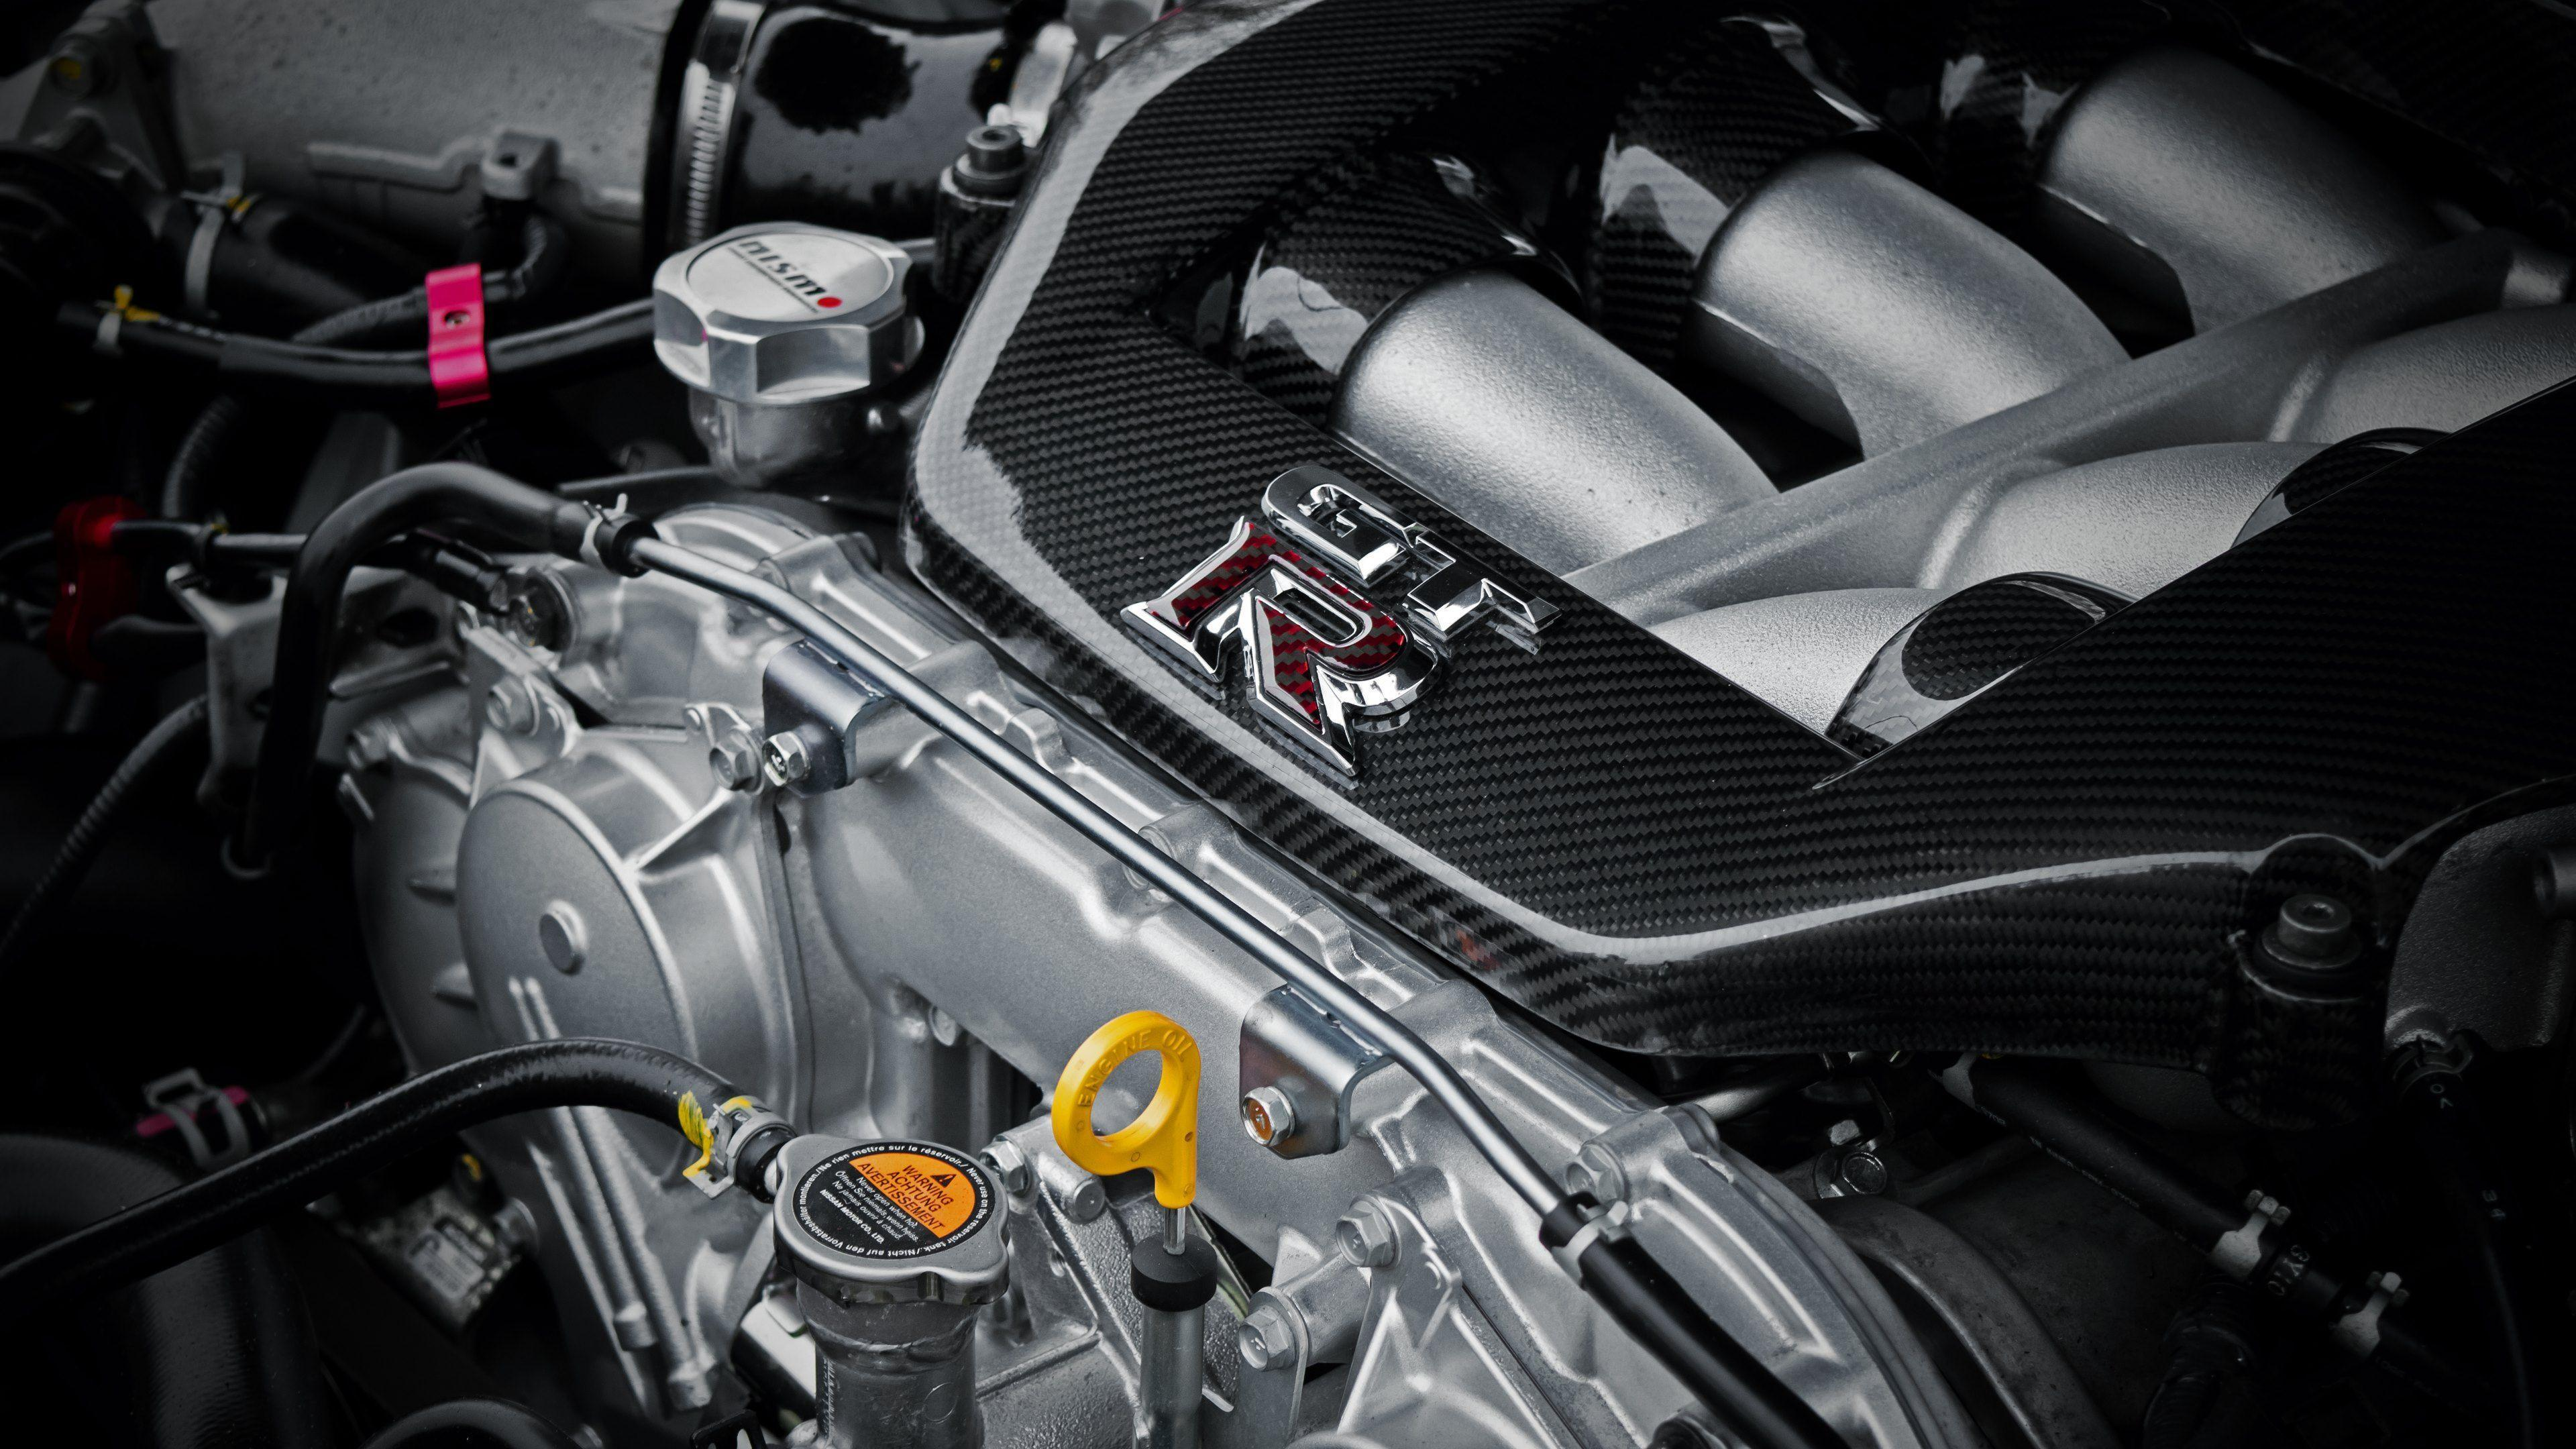 Nissan GTR Engine and Logo Wallpapers in HD, 4K and wide sizes